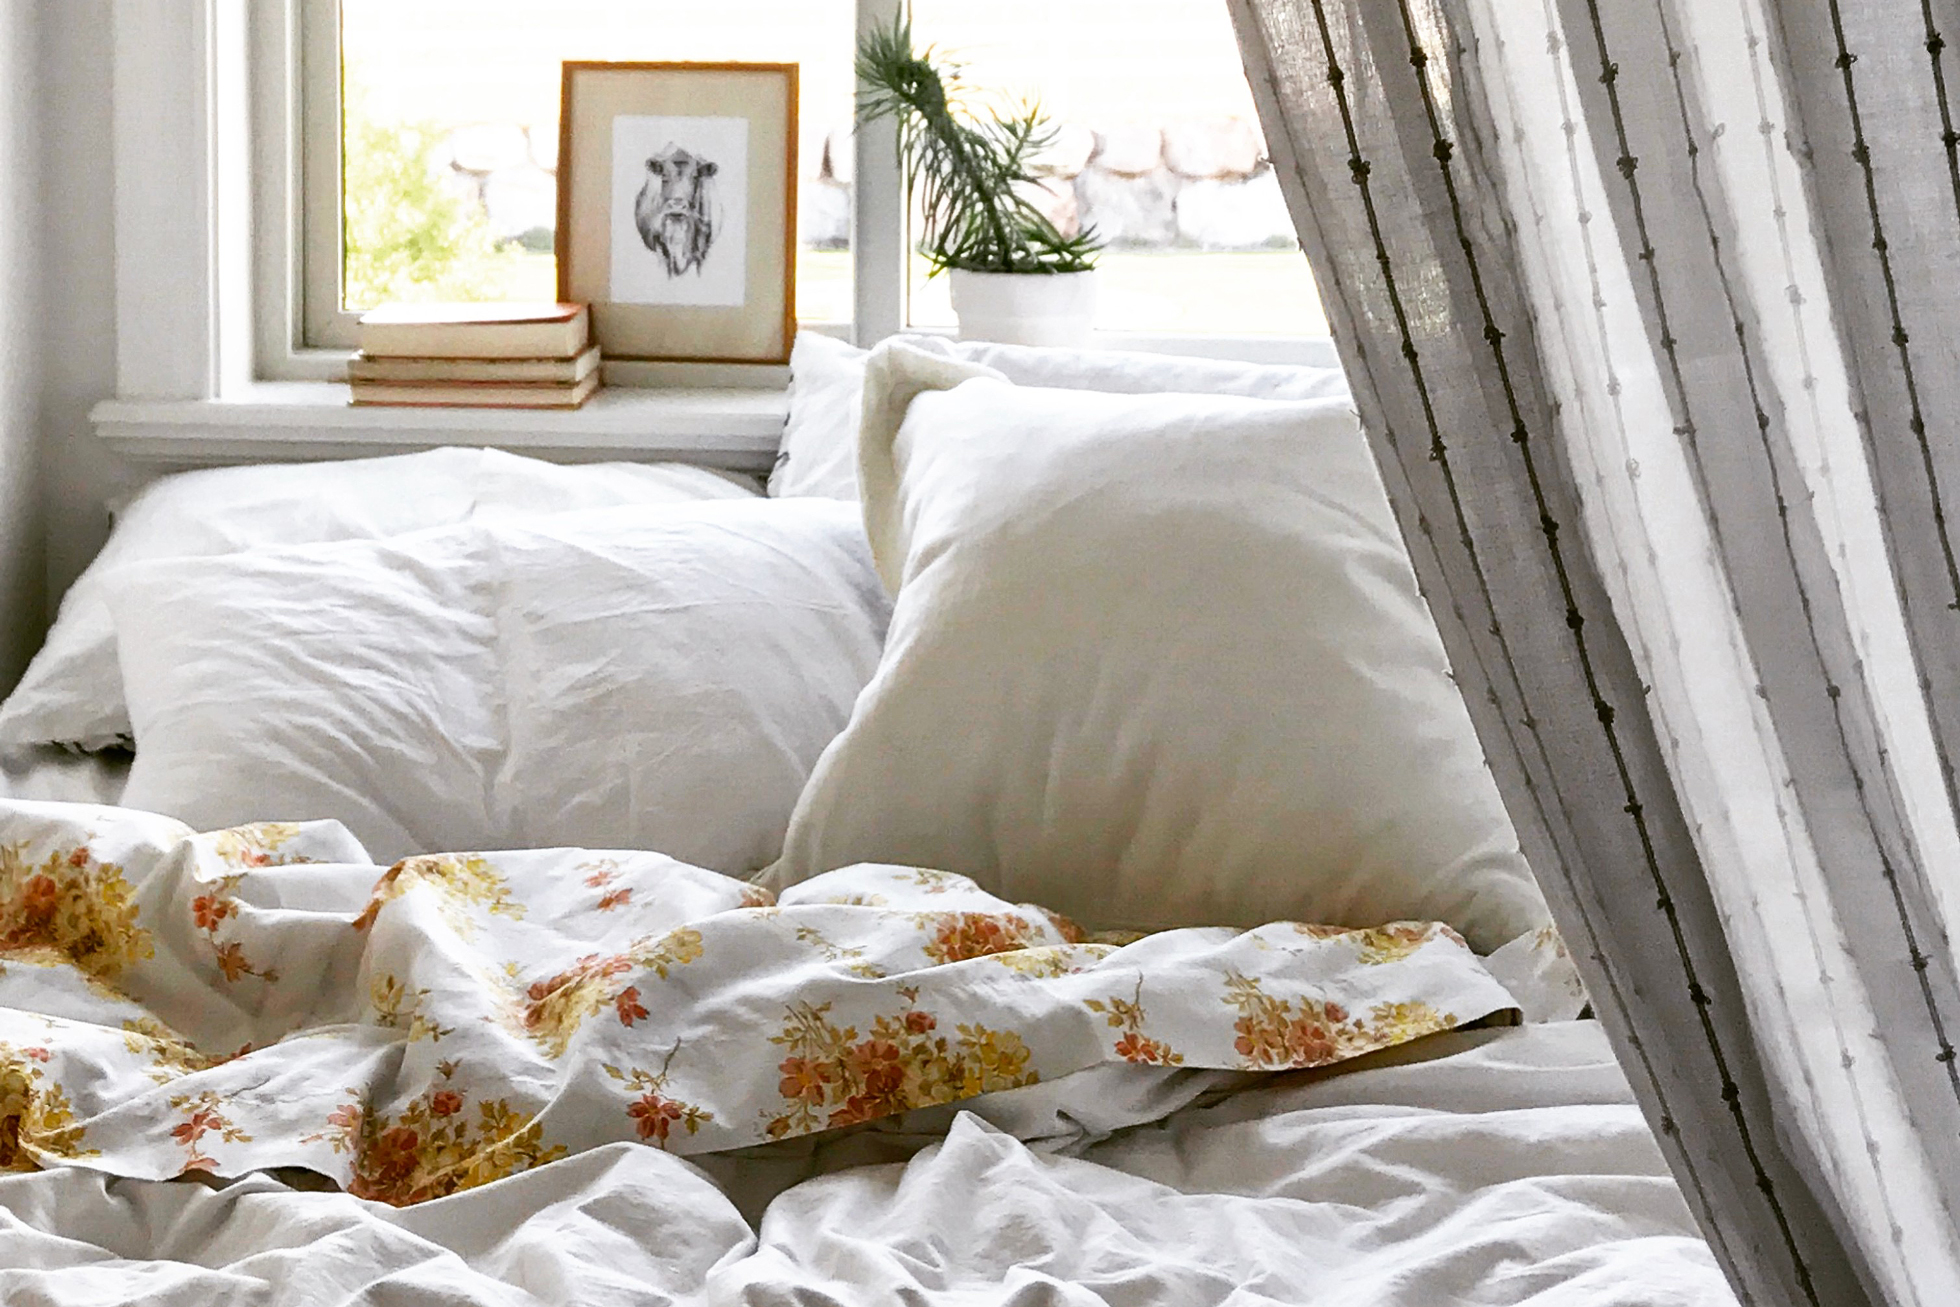 A bed with white sheets and a white bedspread by window